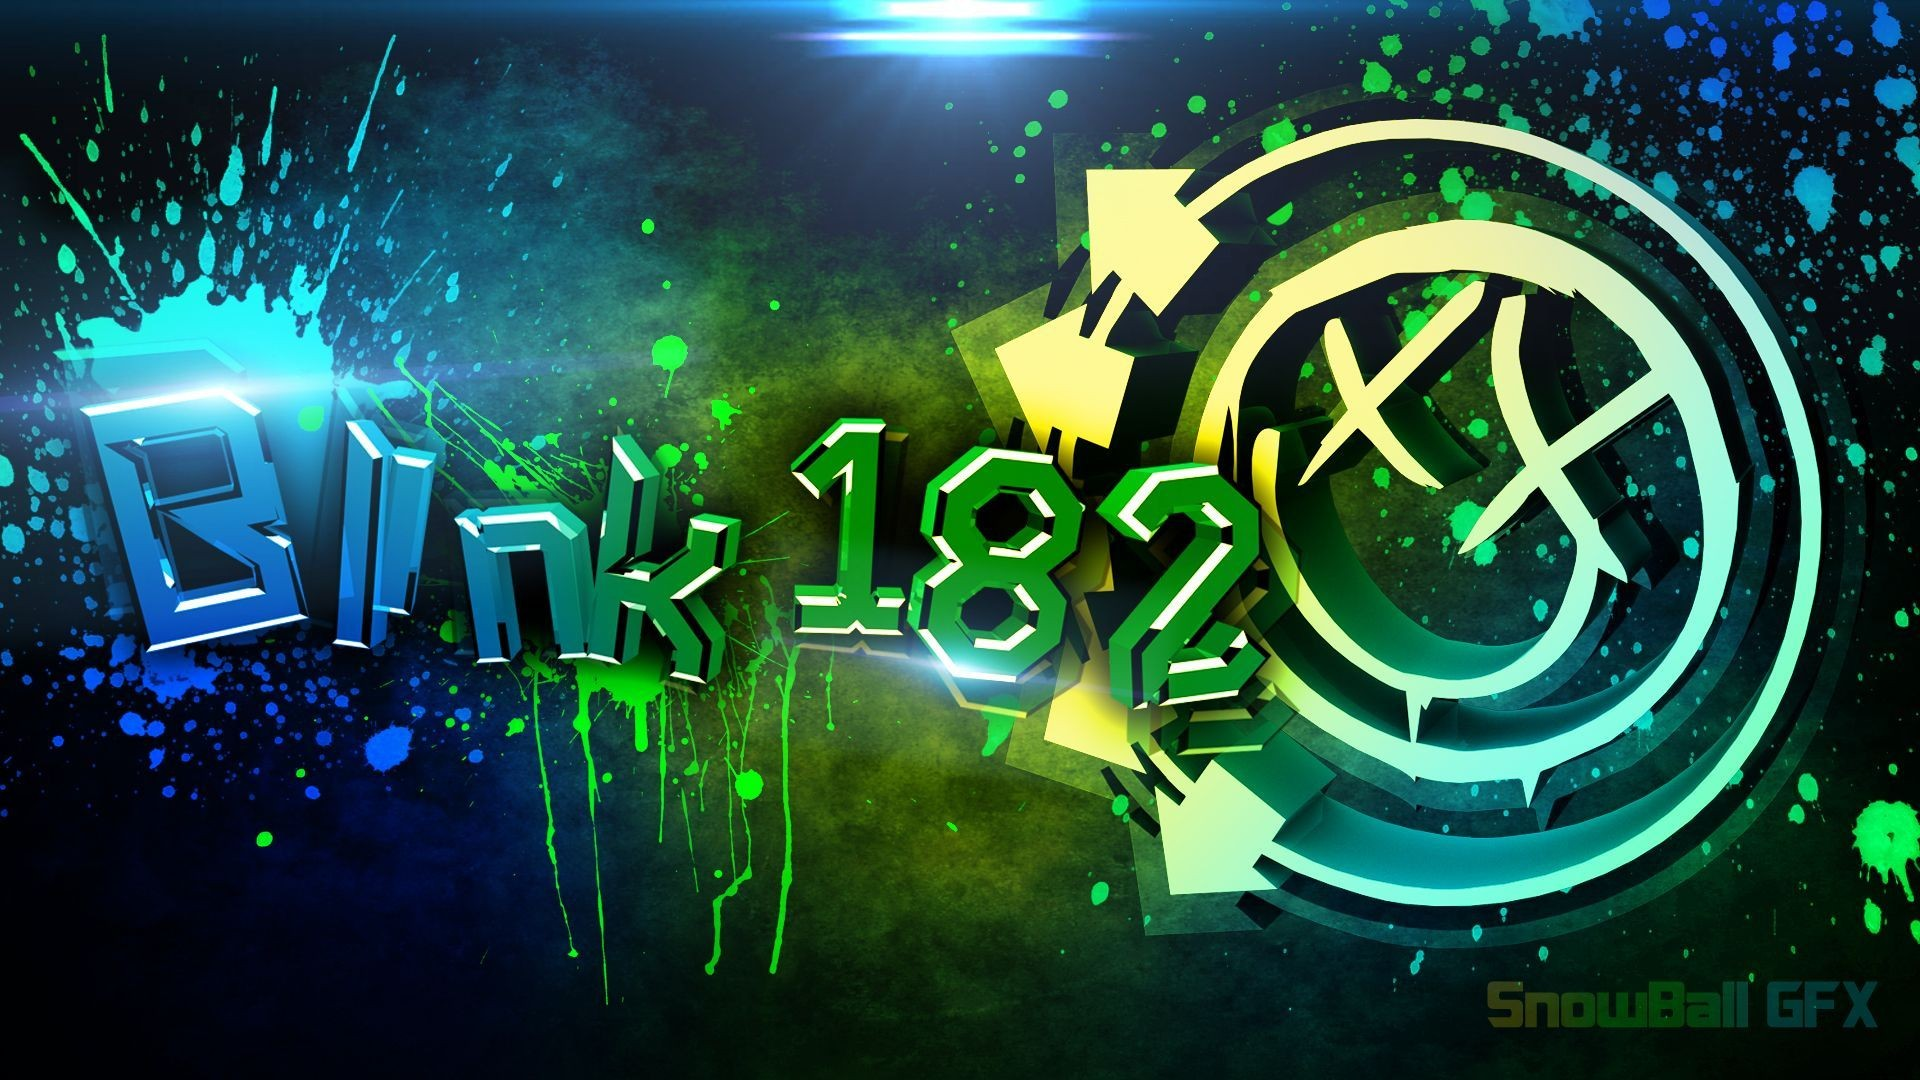 Hd Blink 182 Backgrounds Amazing Images Free Images Blink